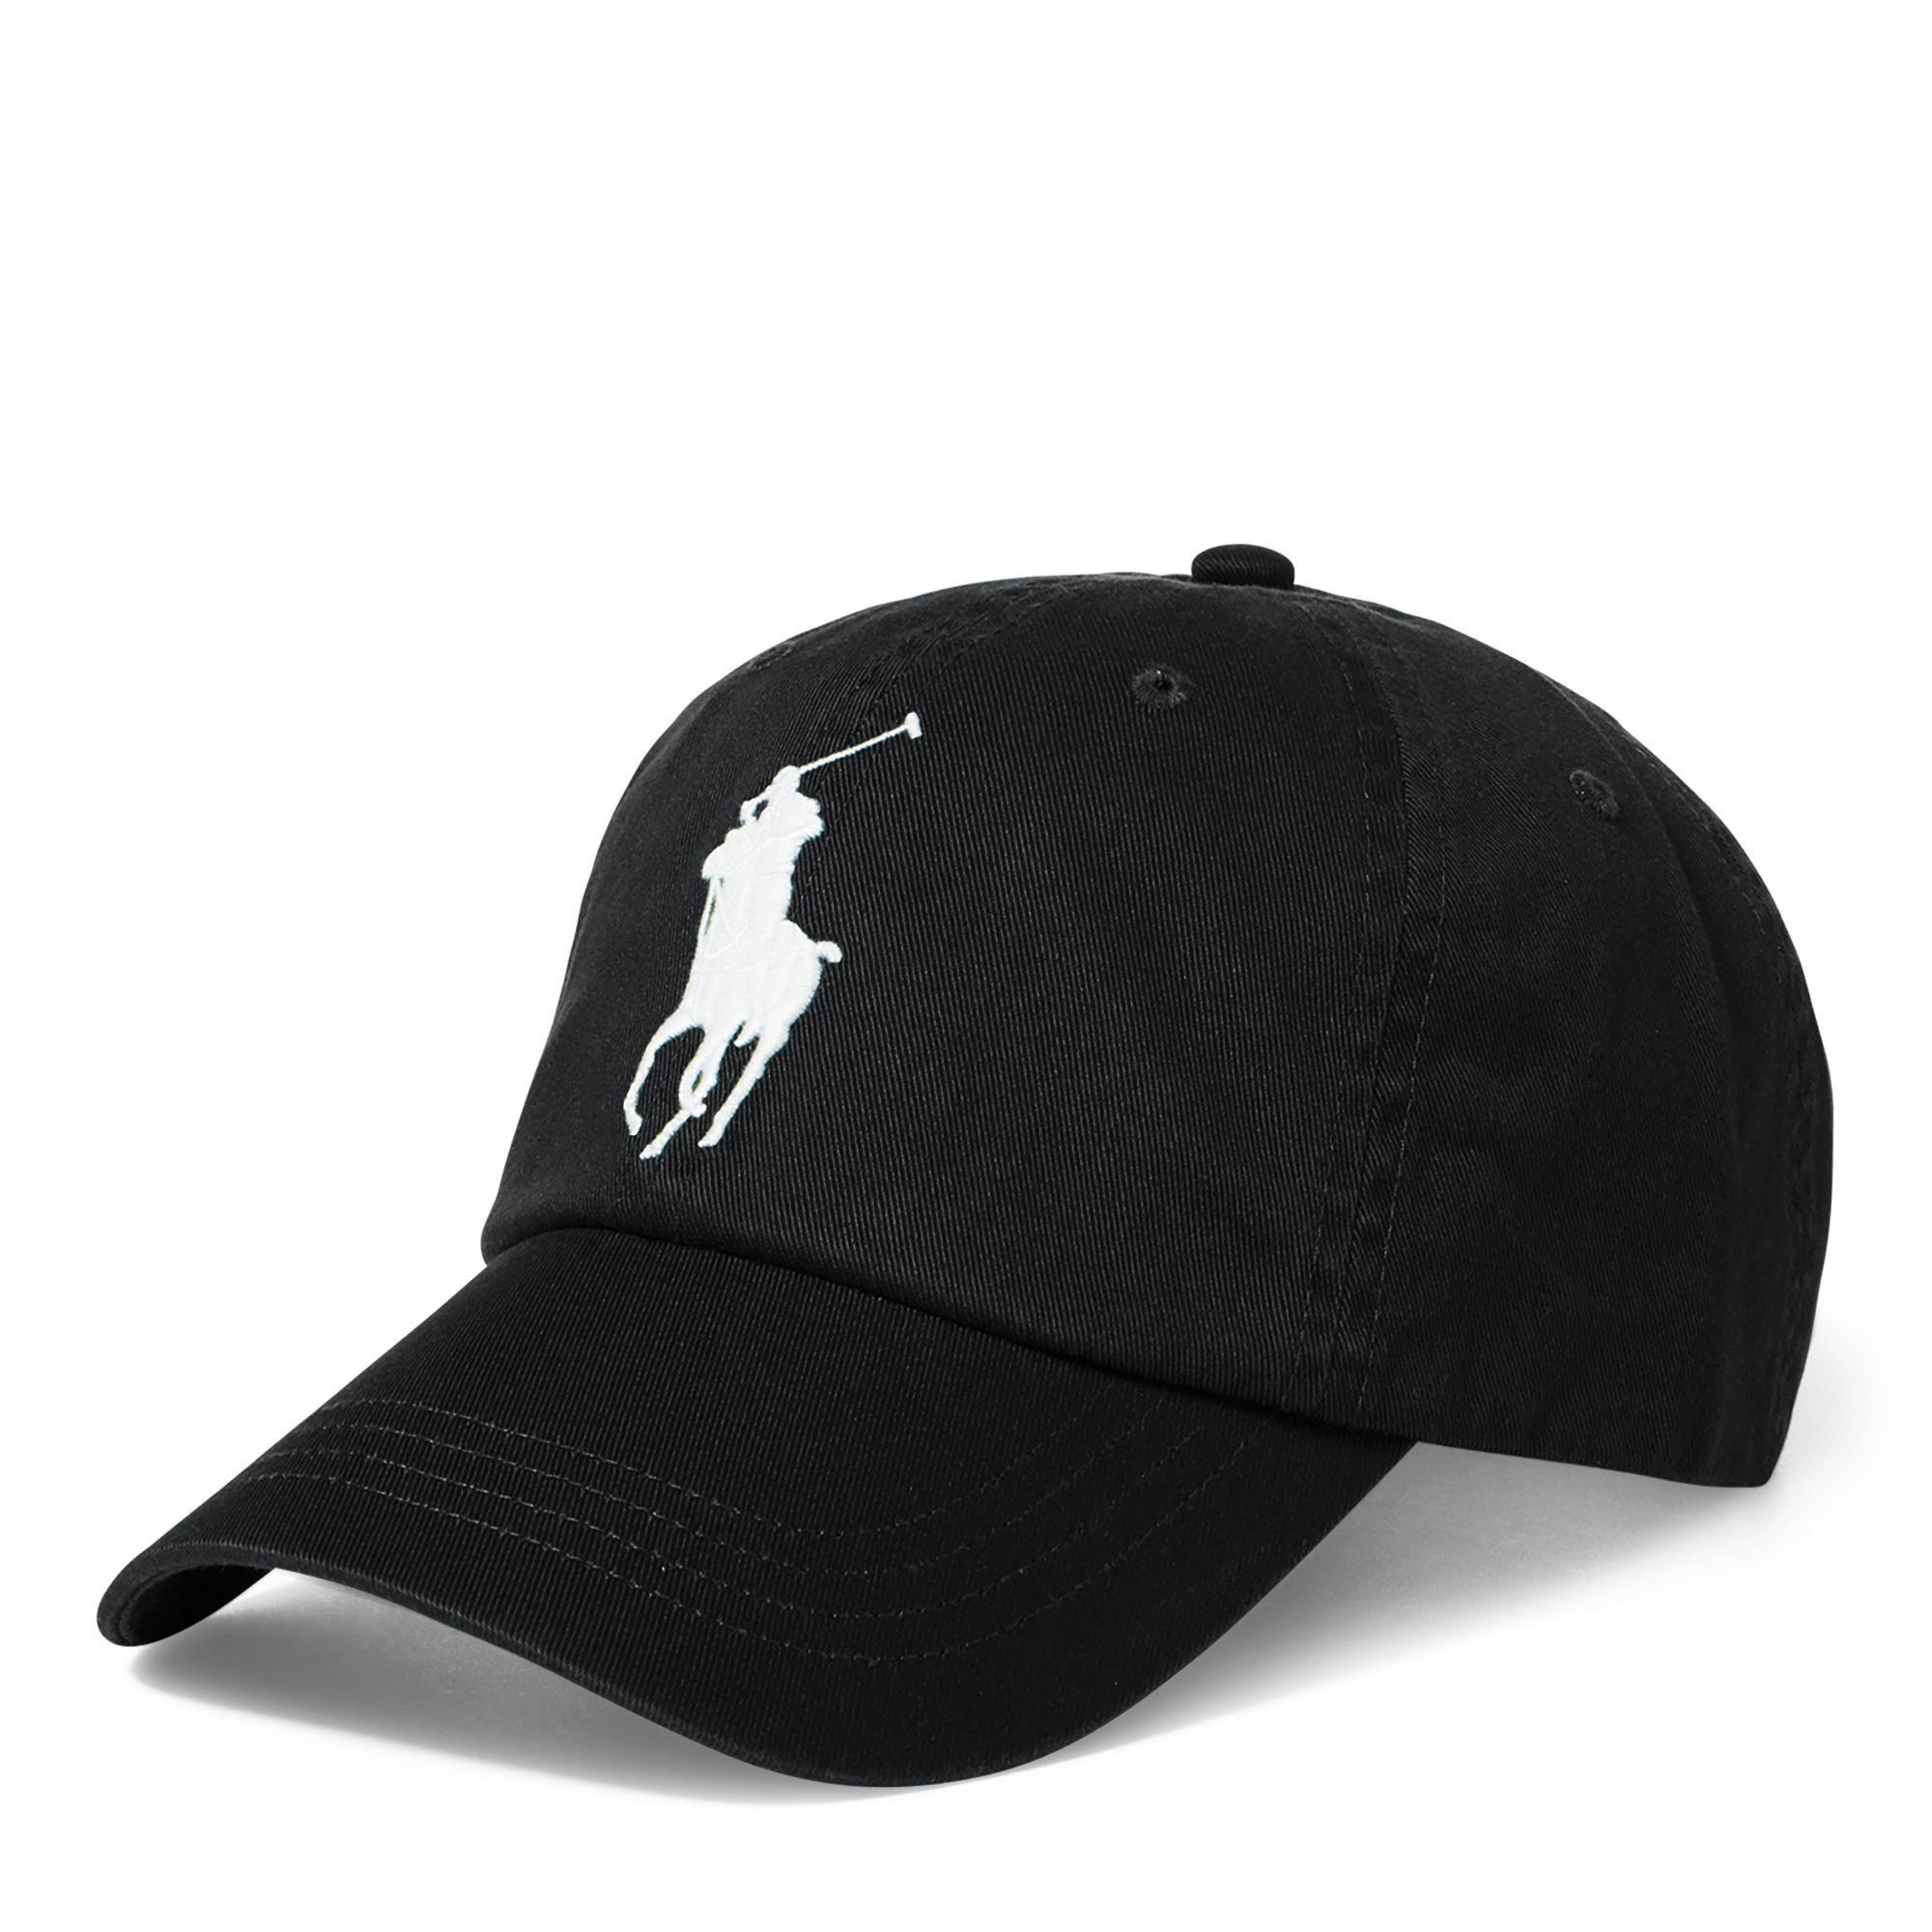 8ddcc73c3fb Polo Ralph Lauren Cotton Chino Baseball Cap in Black for Men - Save ...